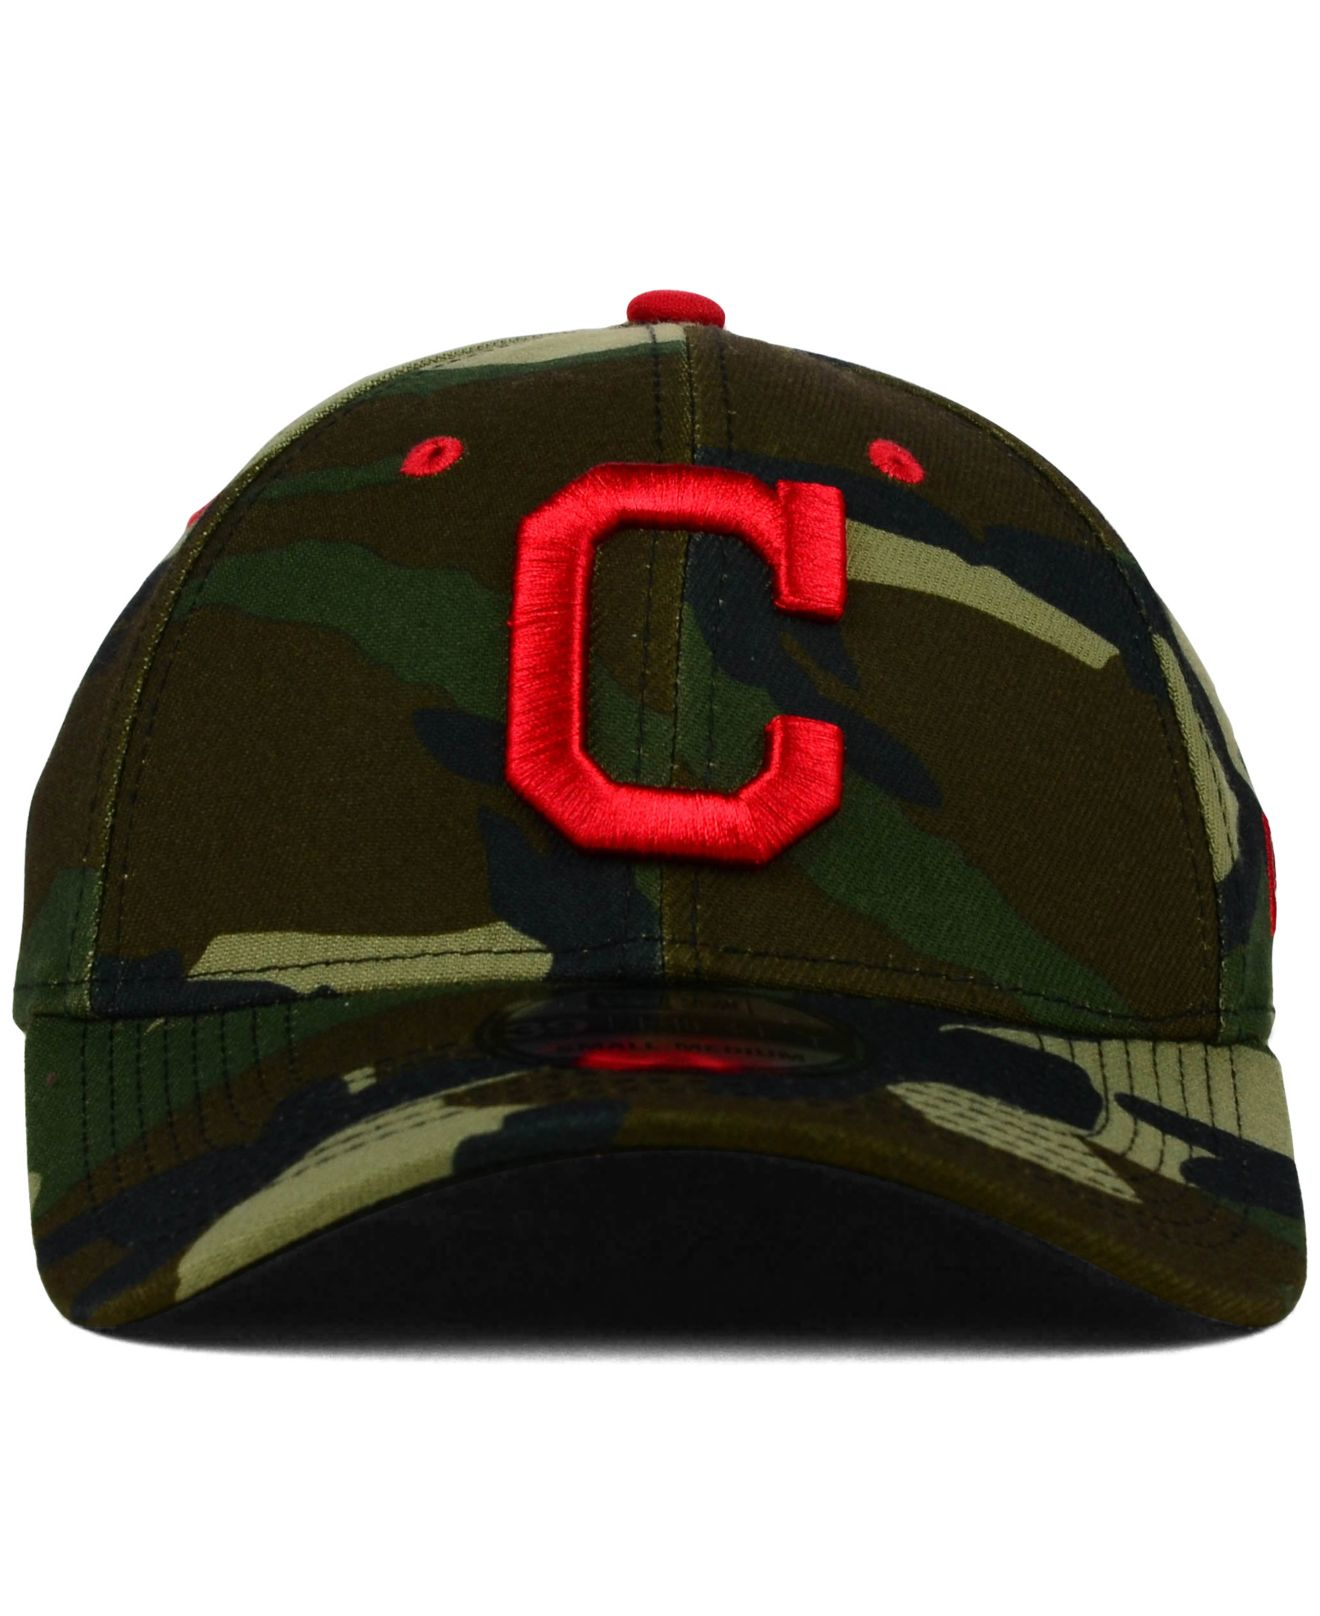 9483defa6e4cf4 ... canada lyst ktz cleveland indians camo classic 39thirty cap in green  for men aef65 0225c